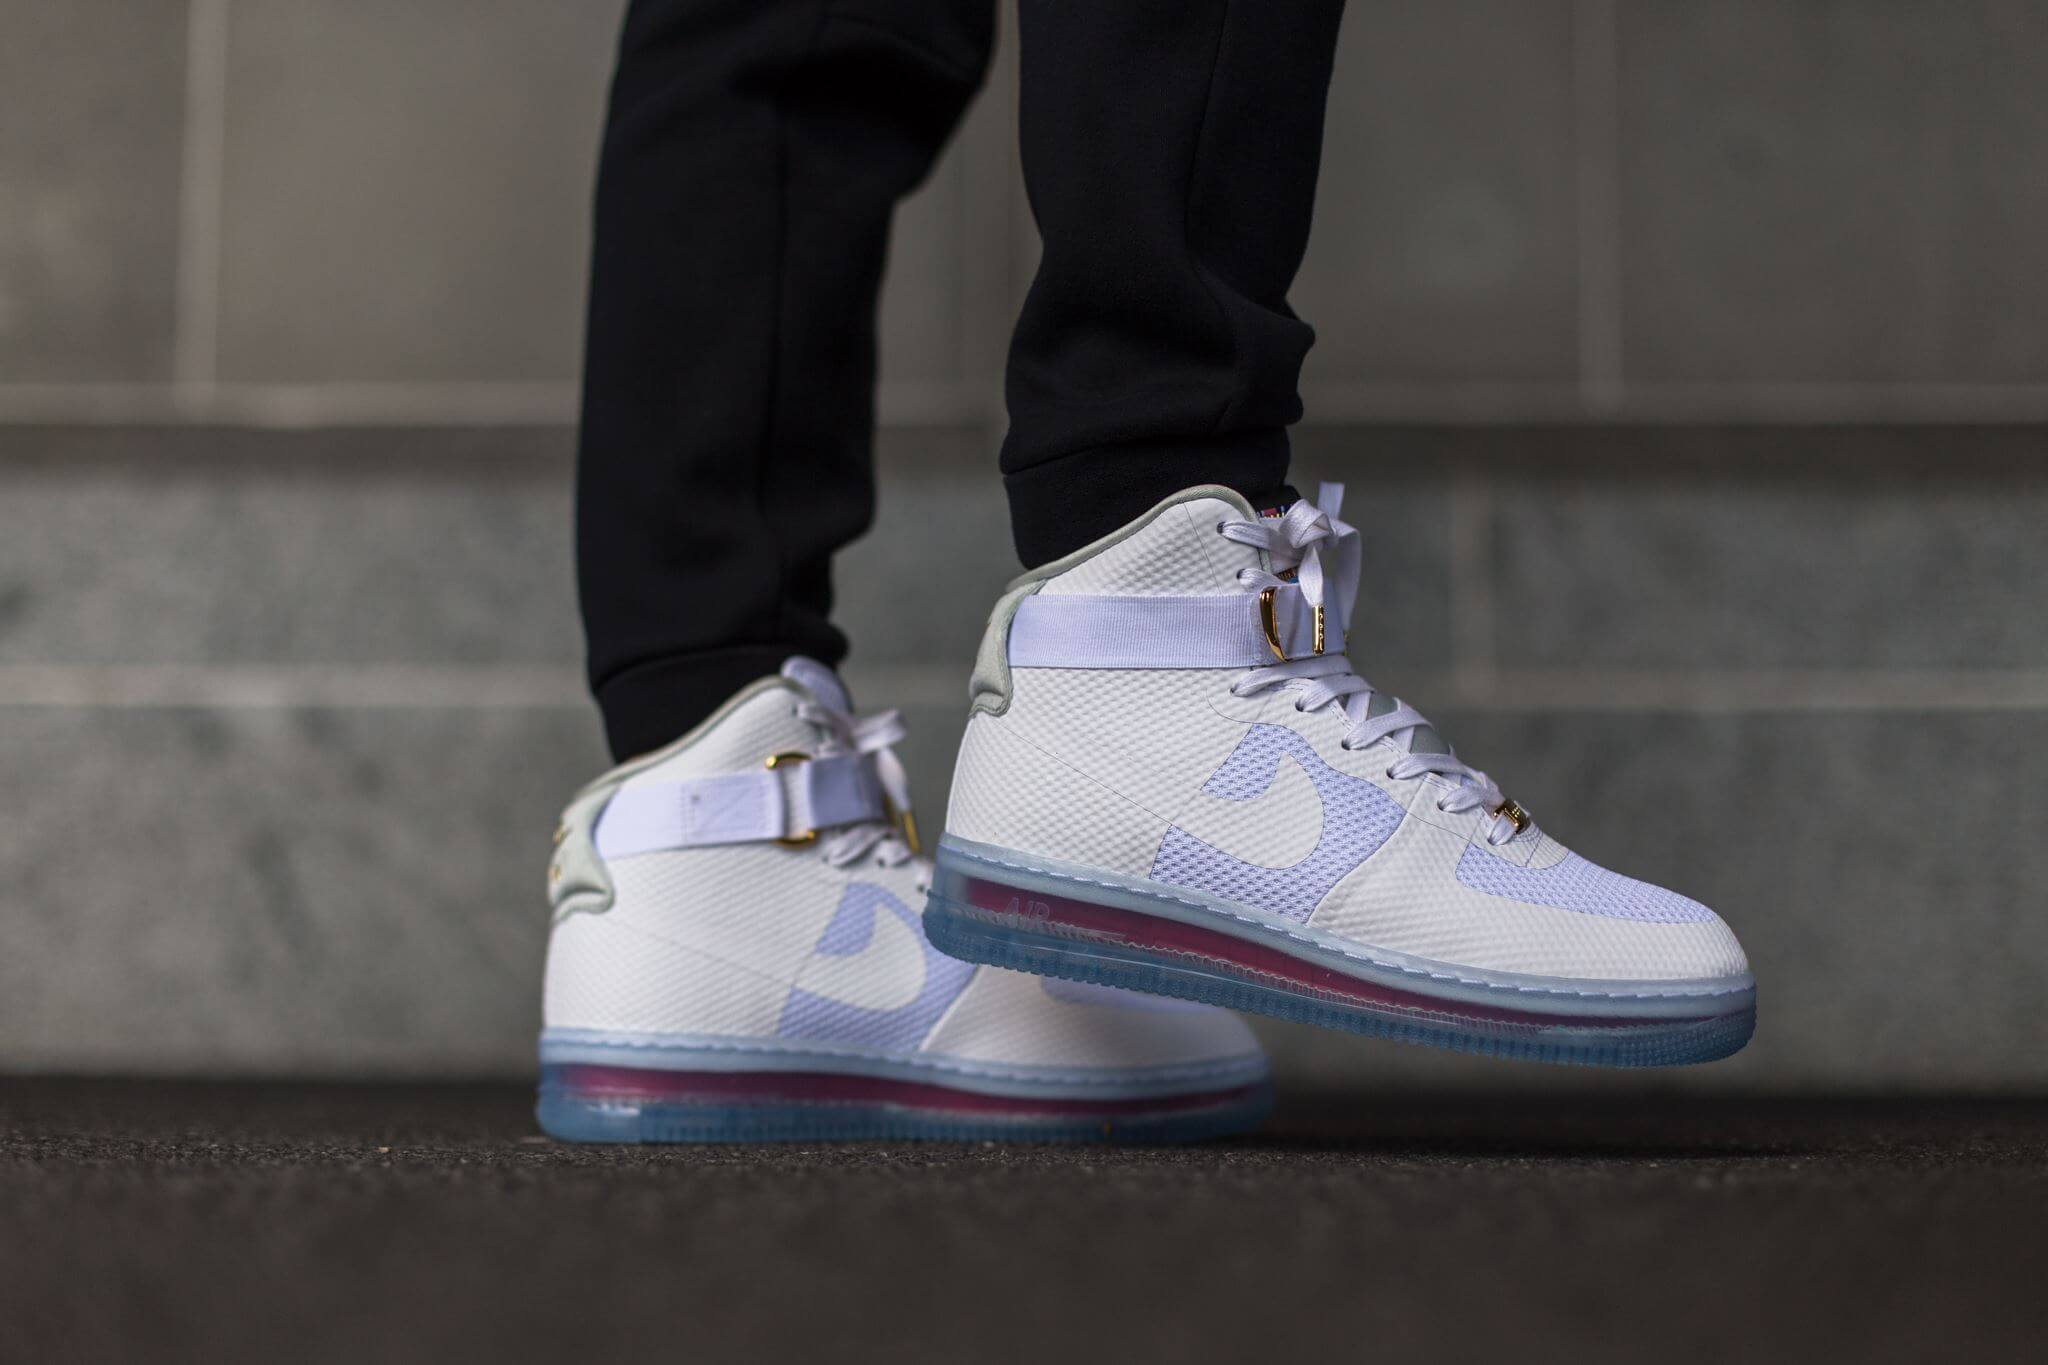 Nike Air Force 1 Comfort Lux QS White Where To Buy